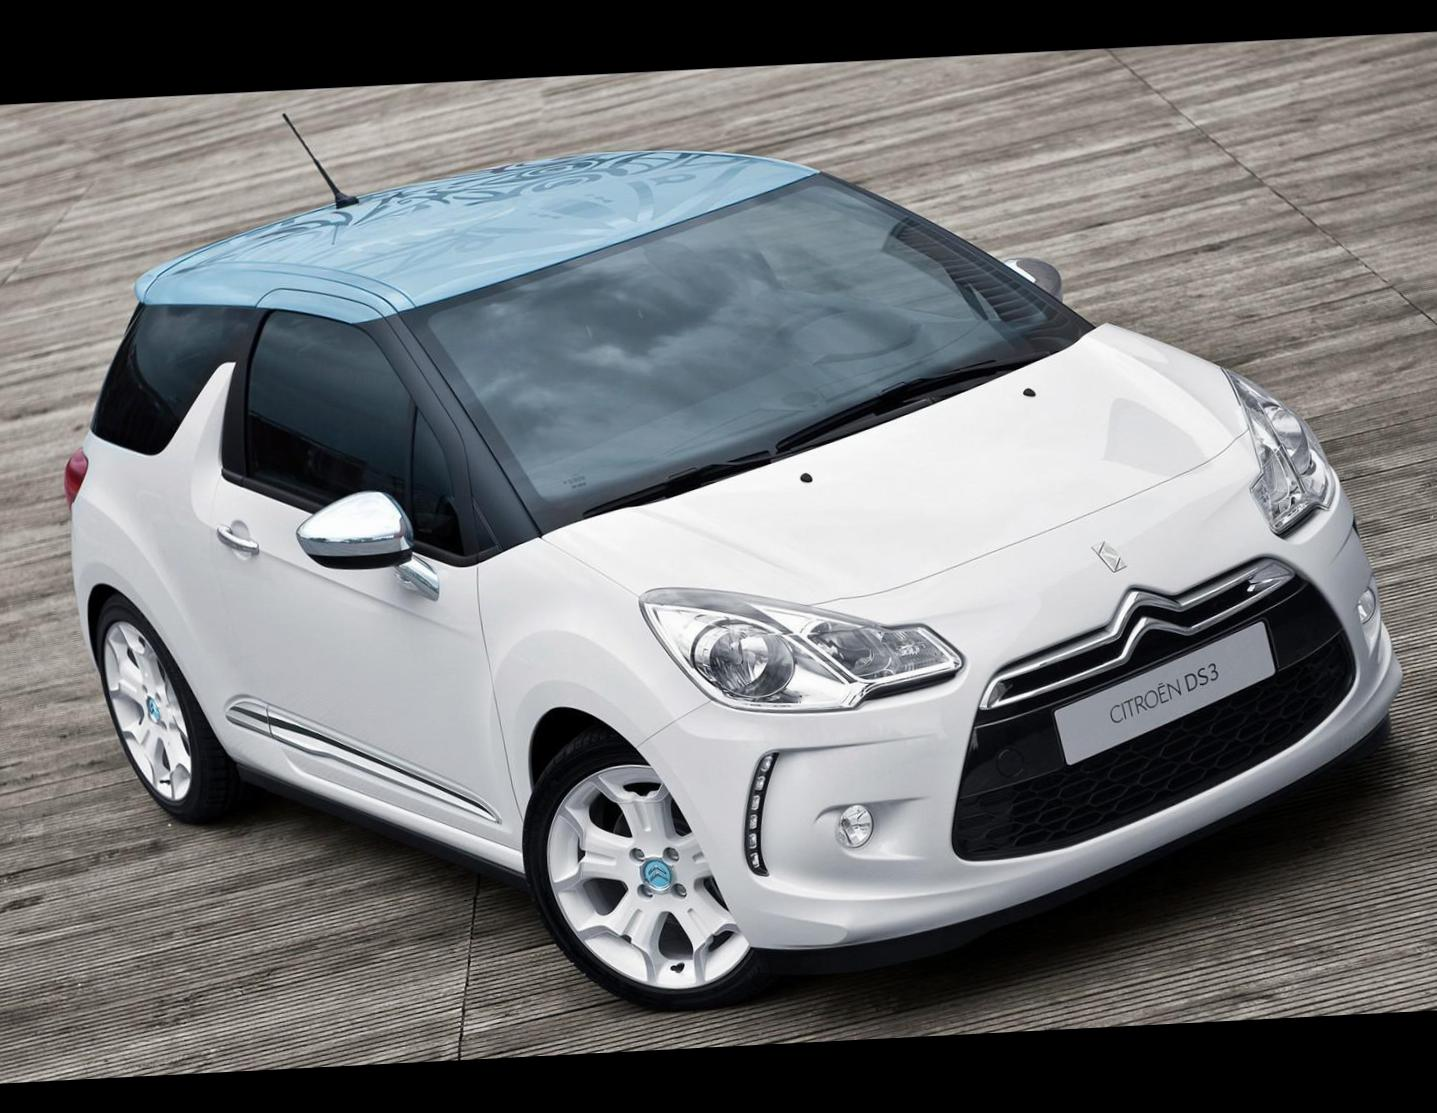 DS3 Citroen prices 2013